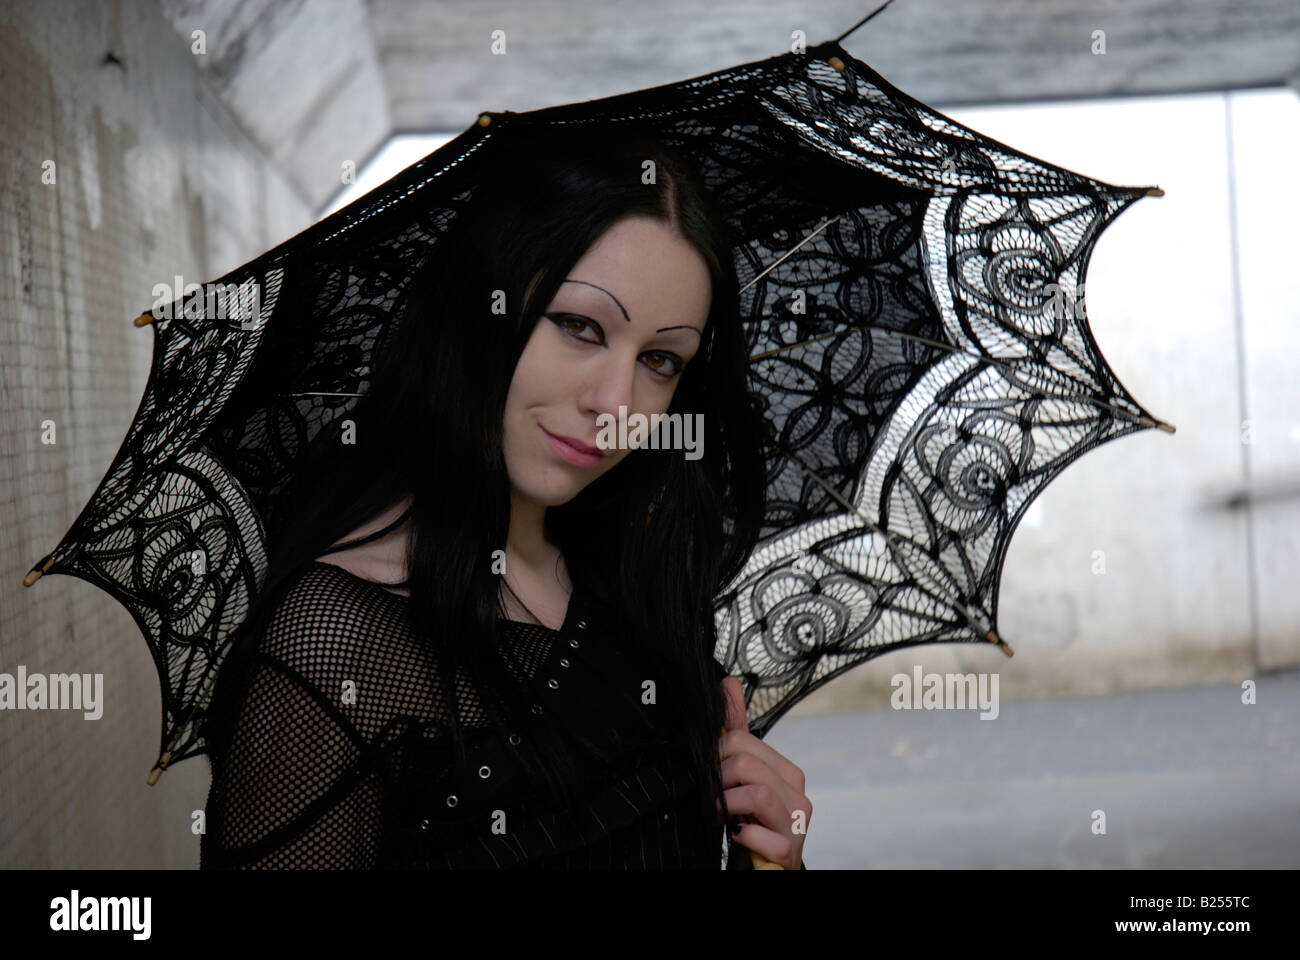 Portrait of a young female goth in an urban underpass - Stock Image